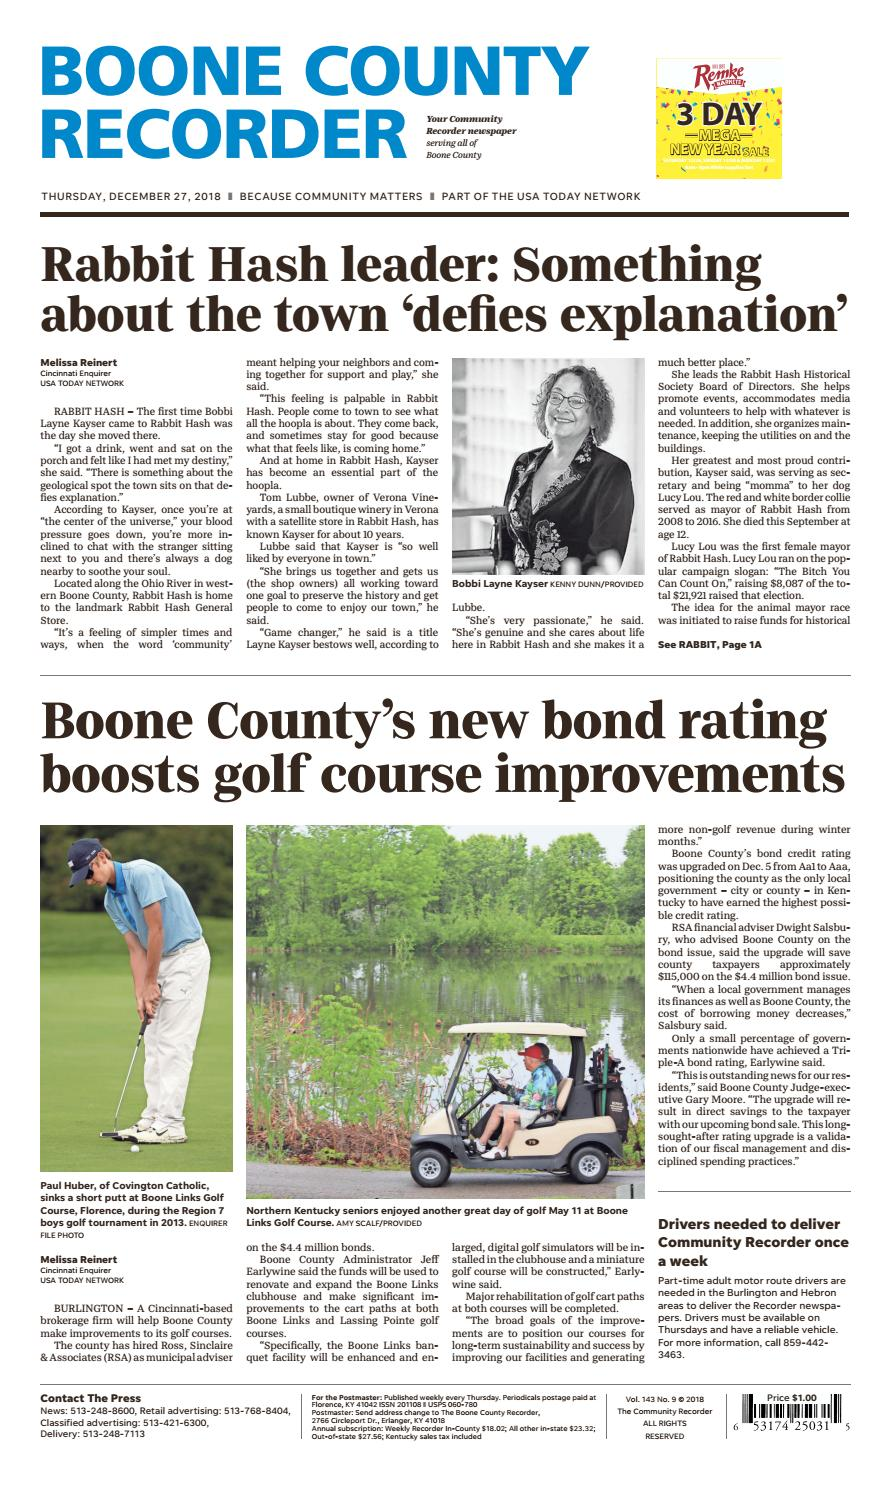 3204a1c66b68c0 Boone County Recorder 12 27 18 by Enquirer Media - issuu